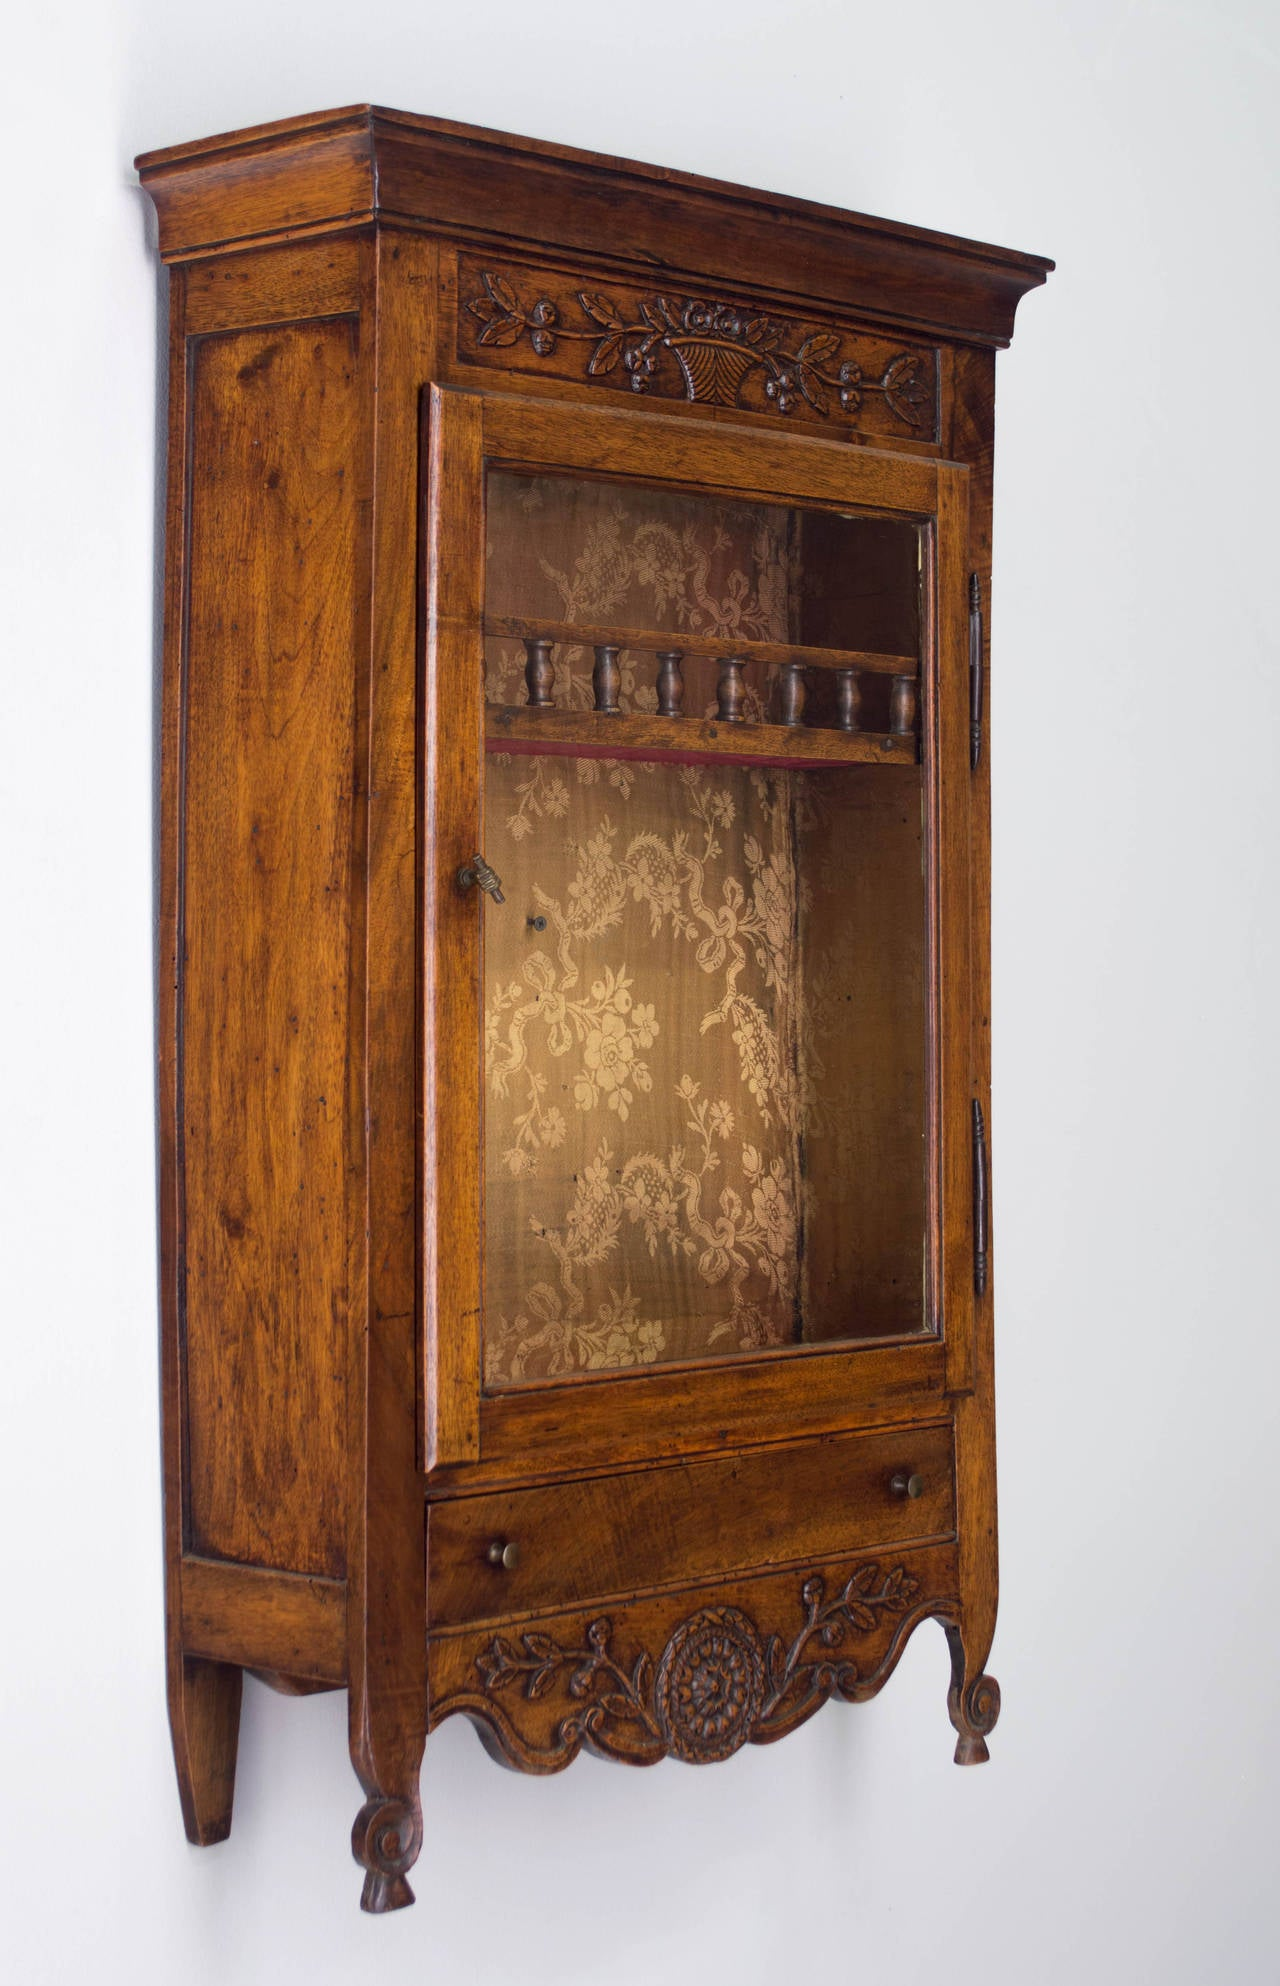 18th Century and Earlier 18th Century French Louis XV Verrio or Display Cabinet For Sale